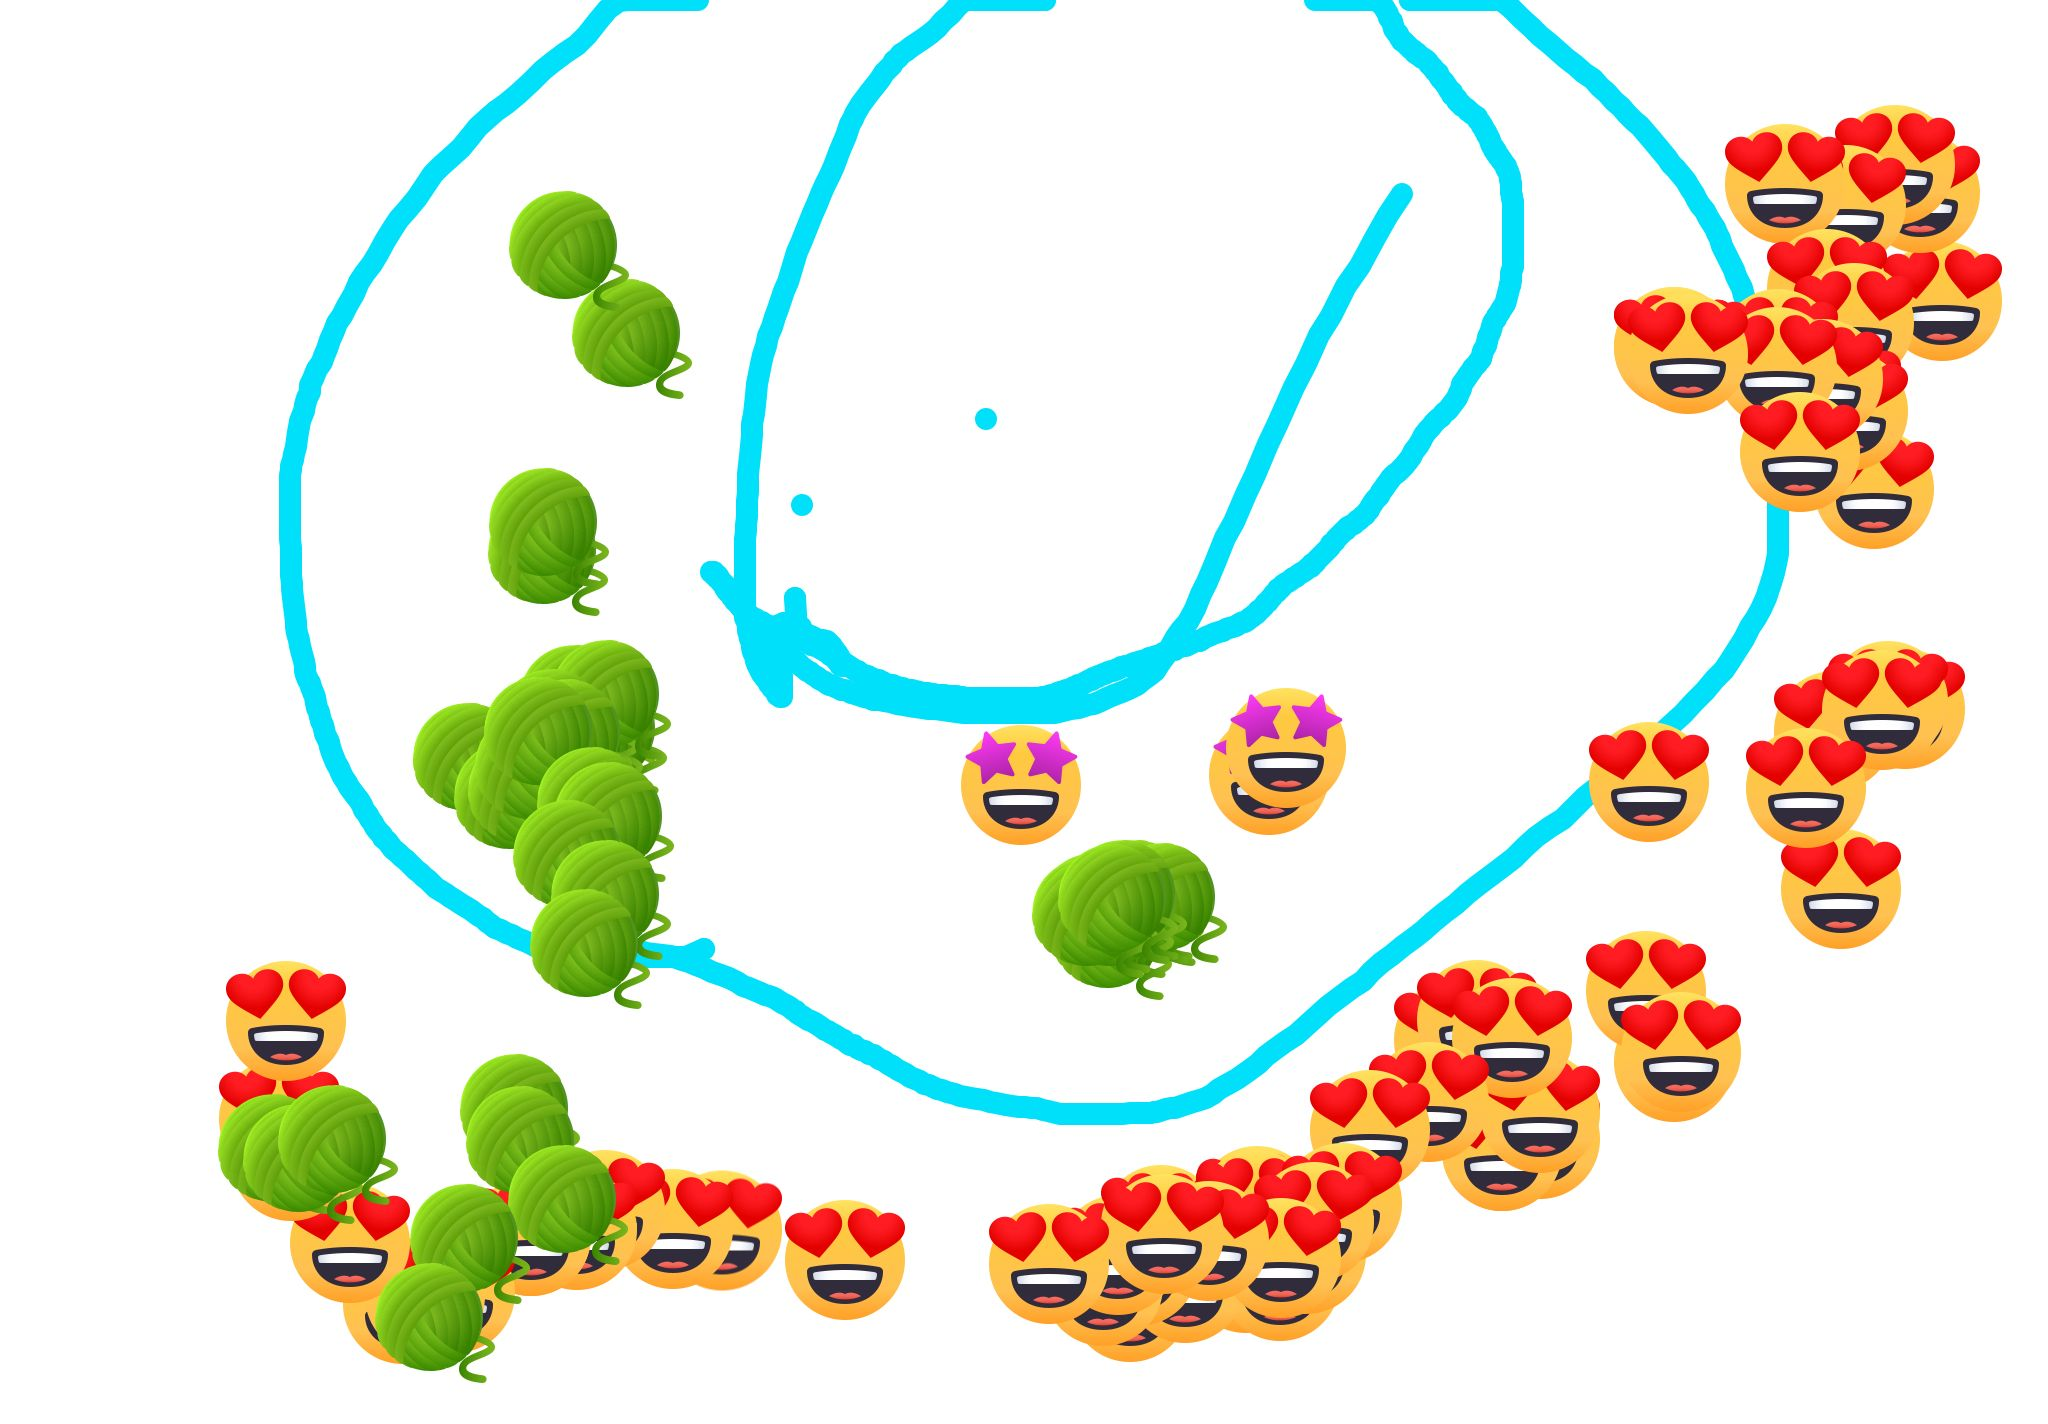 I just drew this with Doodle Buddy, a free drawing app for